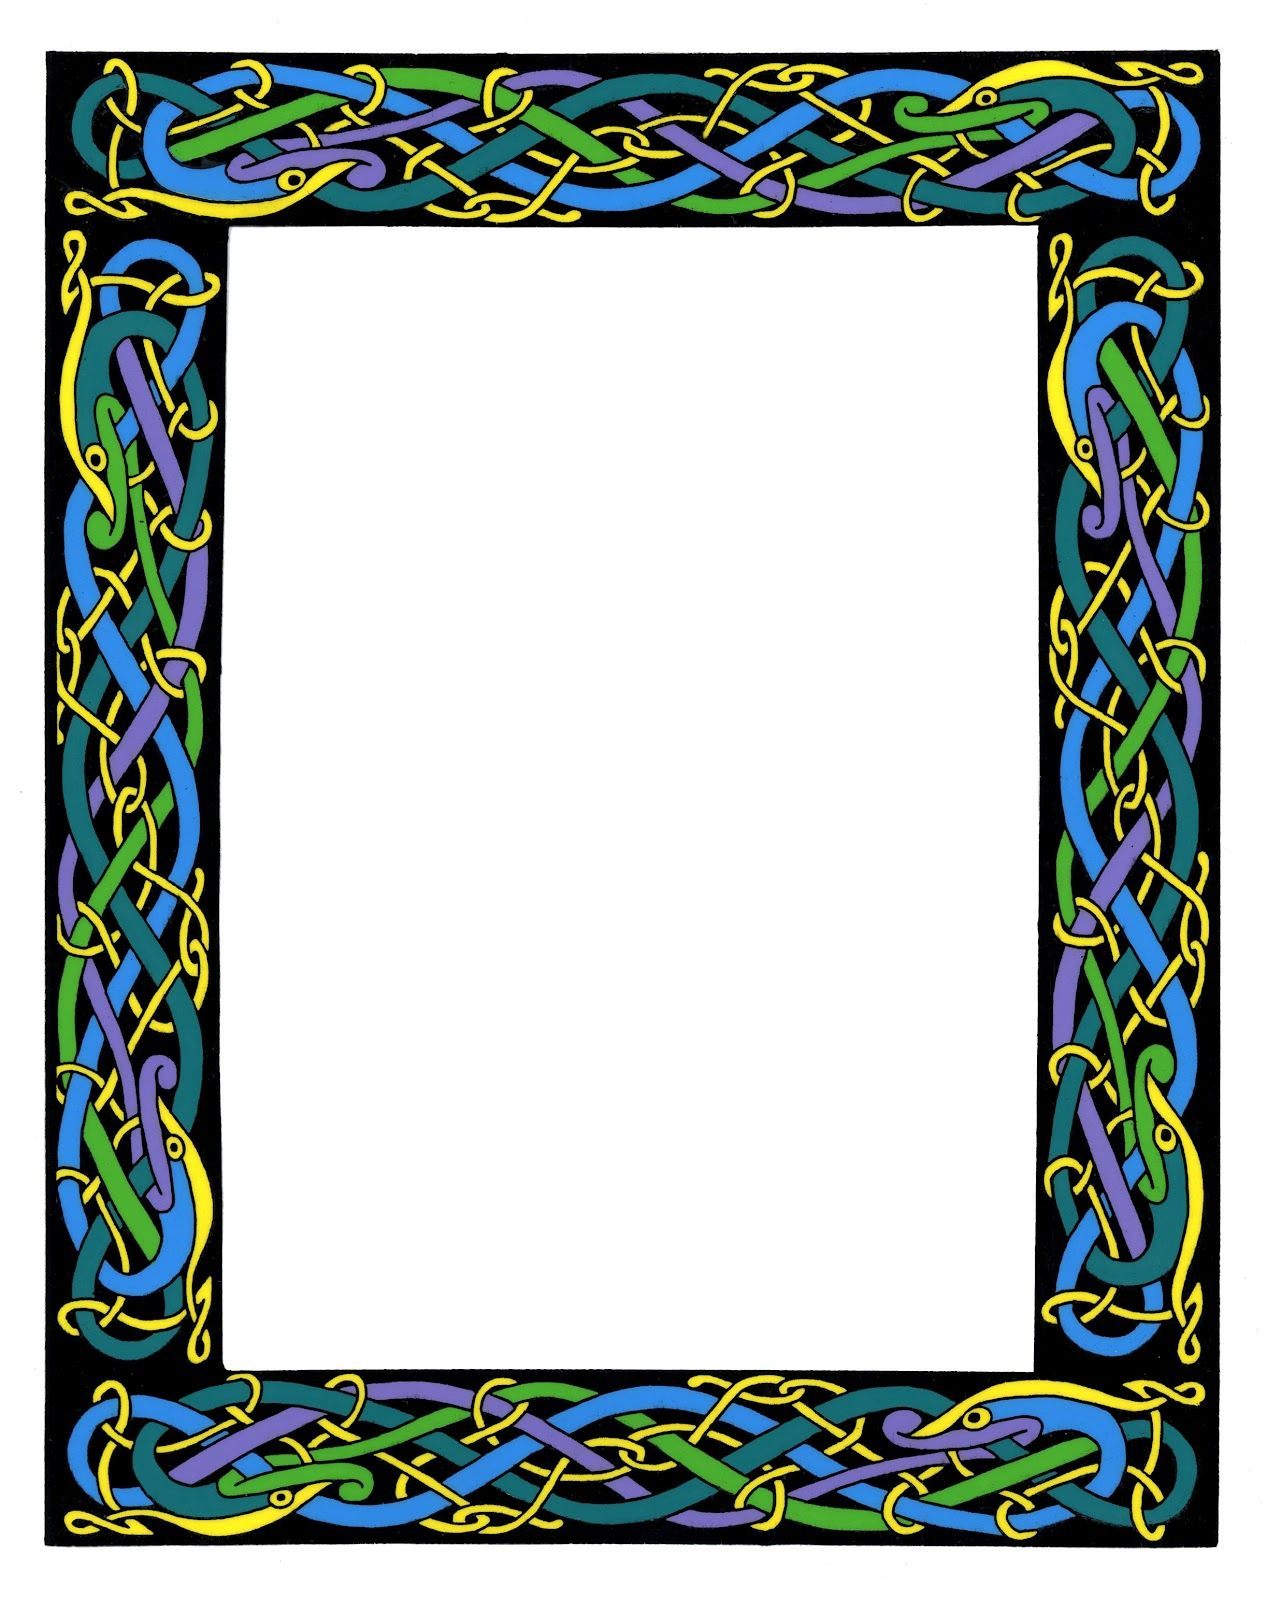 free celtic borders the best free library clipart wallpapers rh pinterest com clip art library free breakfast border clip art librarian